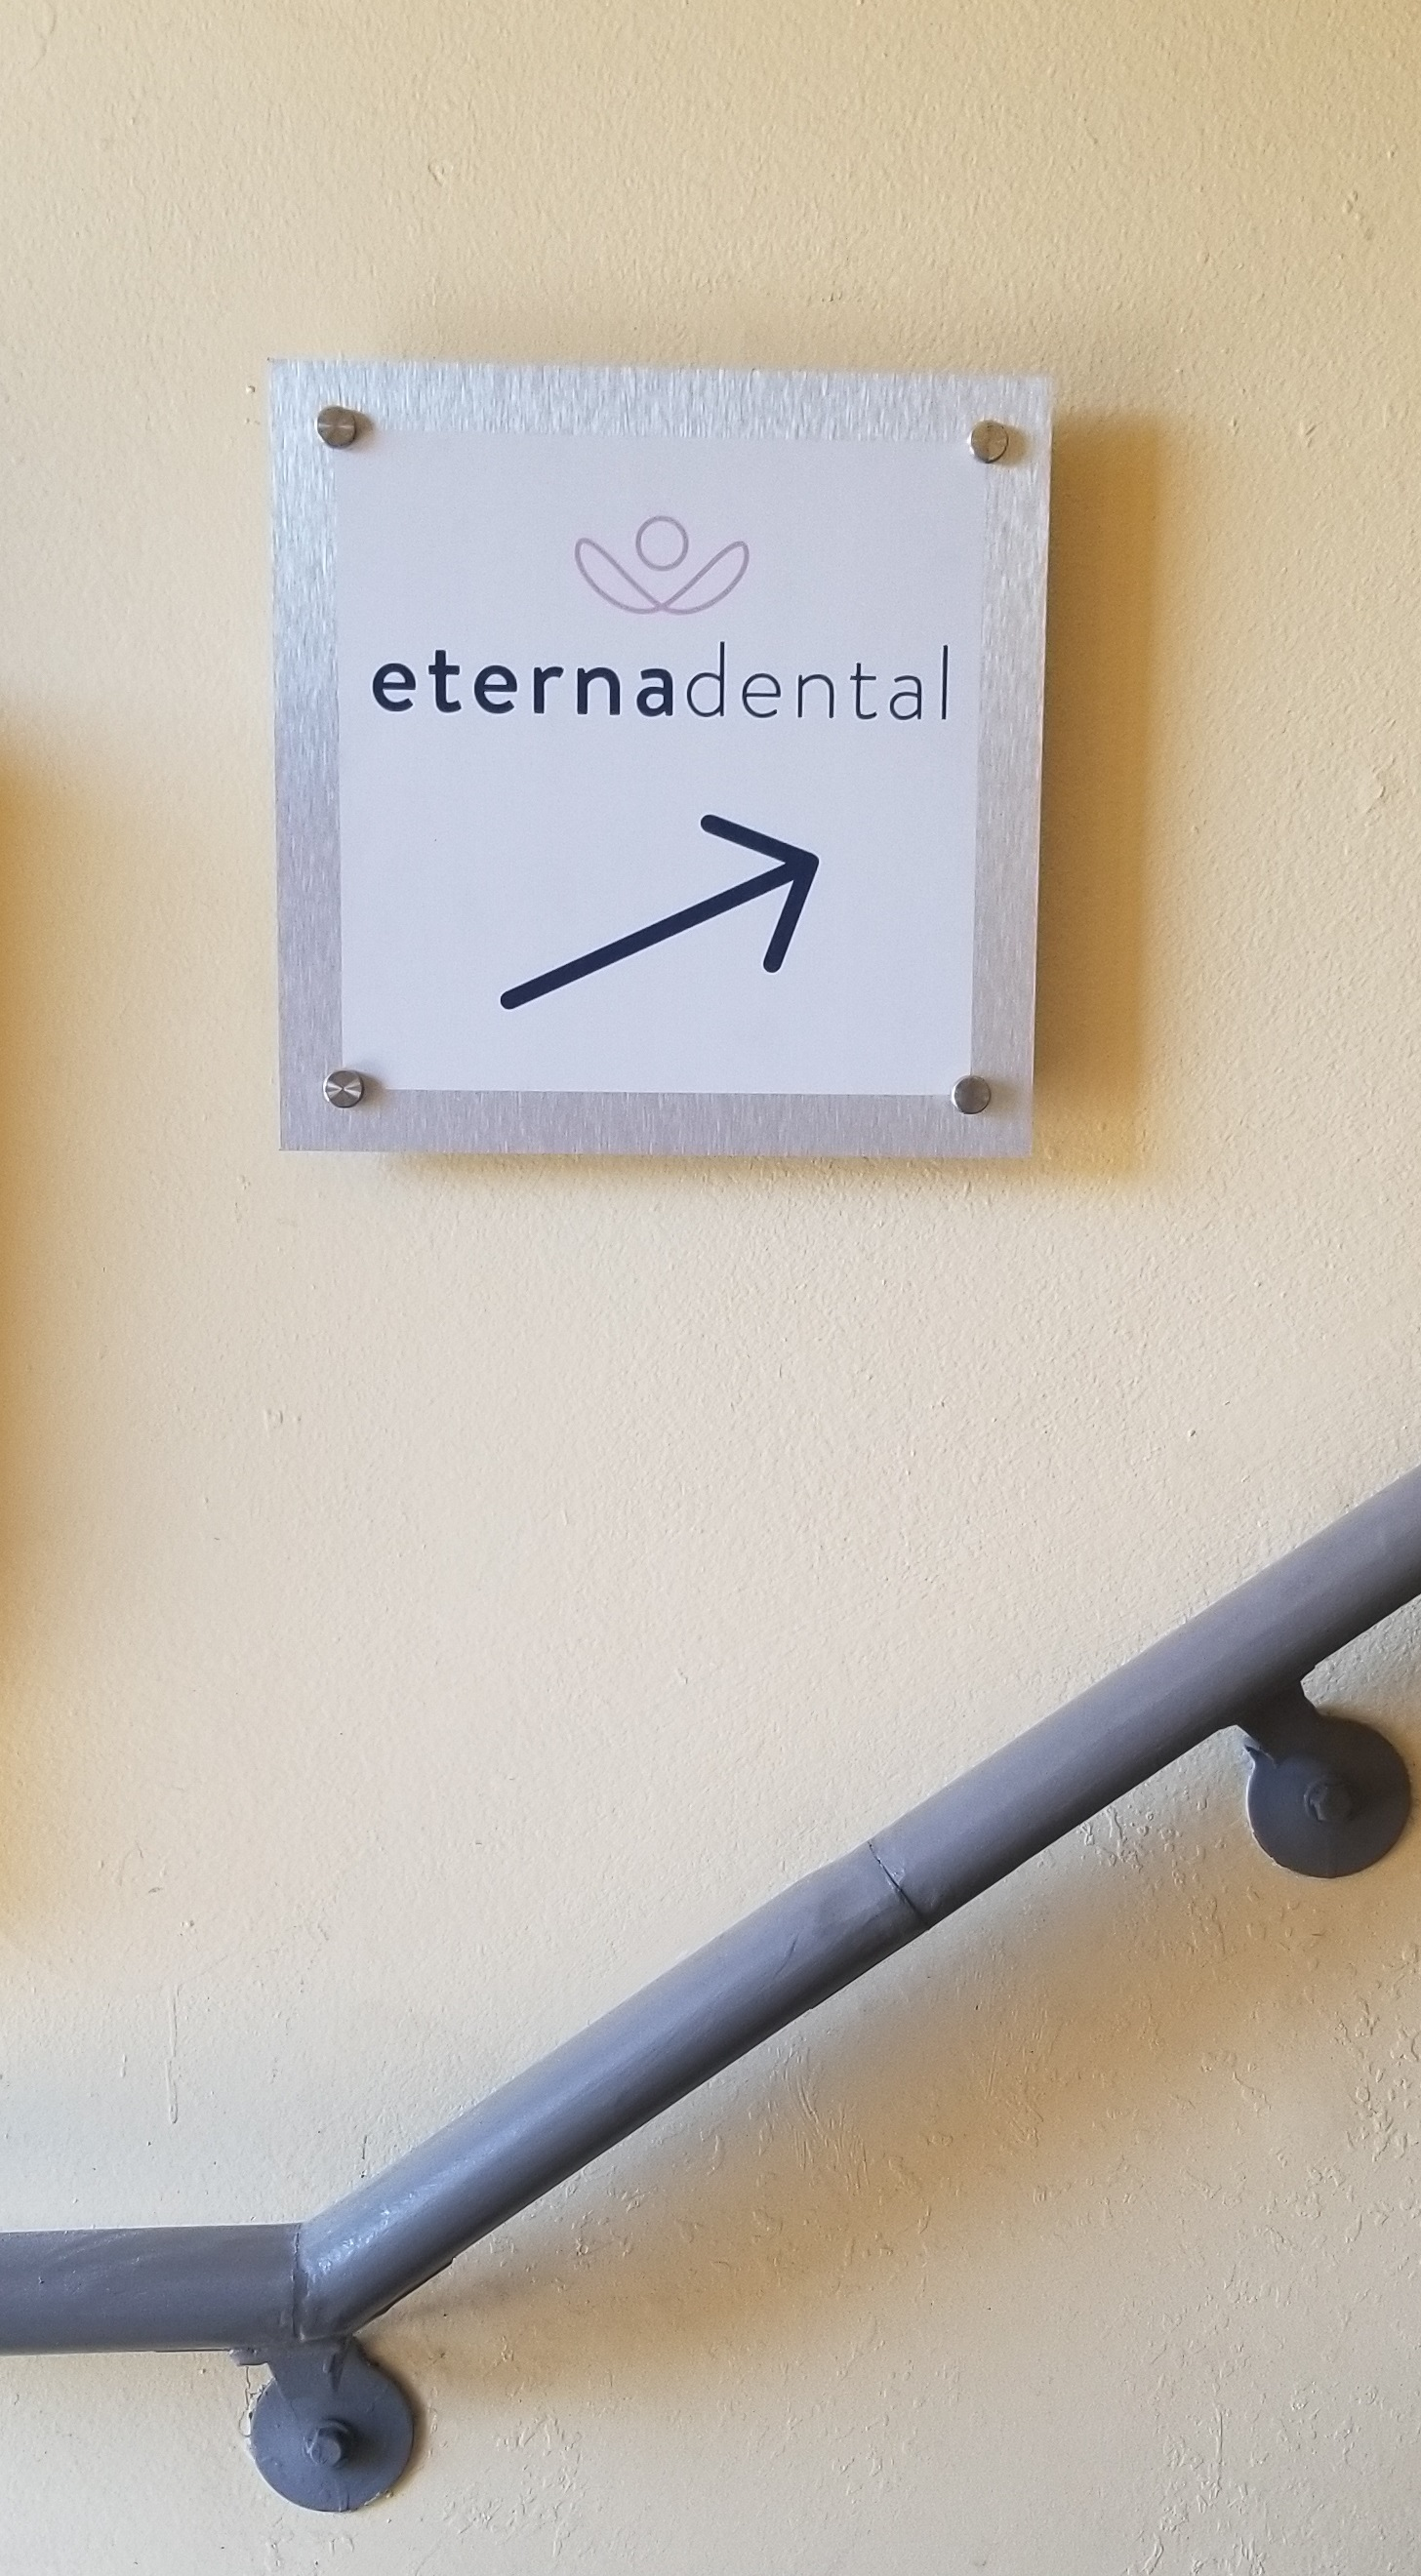 More signs for Eternadental in Huntington Park as part of their business sign package. These are directional signs to help guide patients to their clinic.